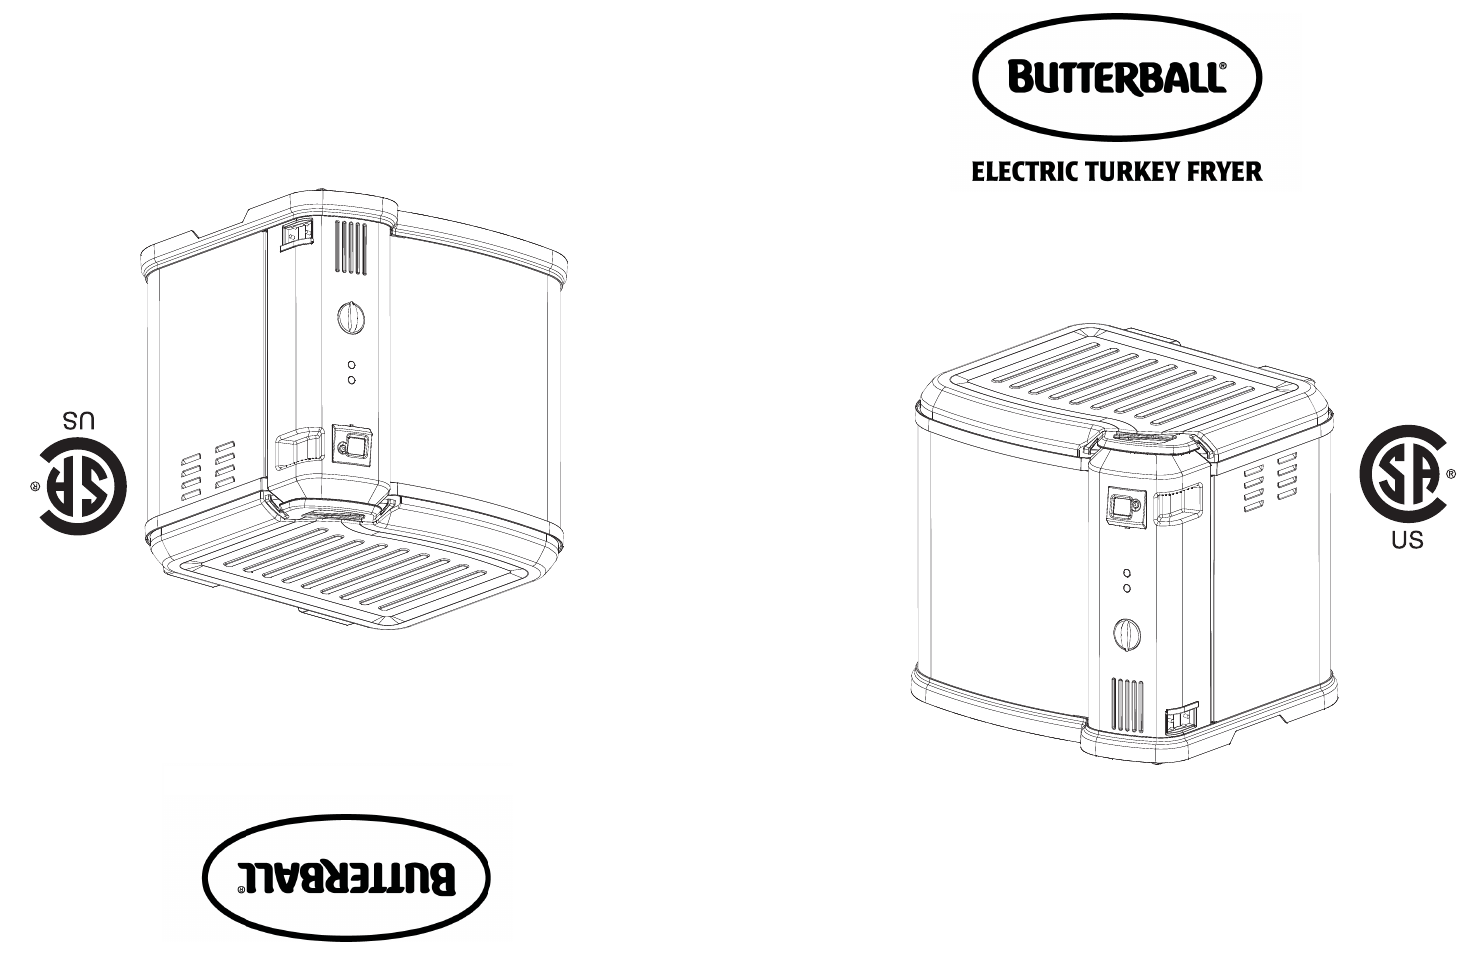 masterbuilt butterball xl indoor electric turkey fryer 23011114 rh manualsdir com butterball deep fryer troubleshooting butterball deep fryer recipes